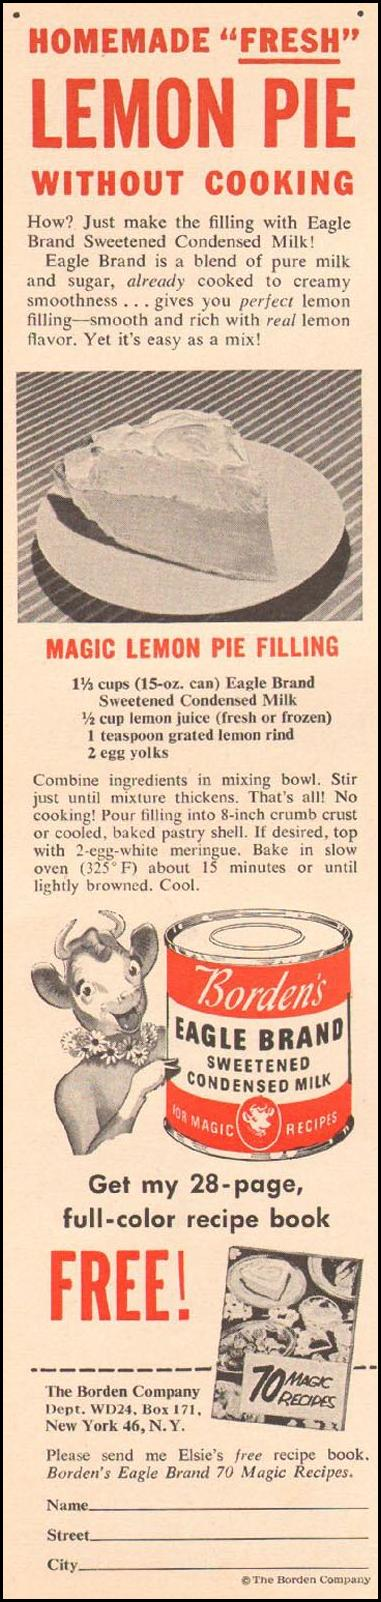 BORDEN'S EAGLE BRAND SWEETENED CONDENSED MILK WOMAN'S DAY 02/01/1954 p. 125